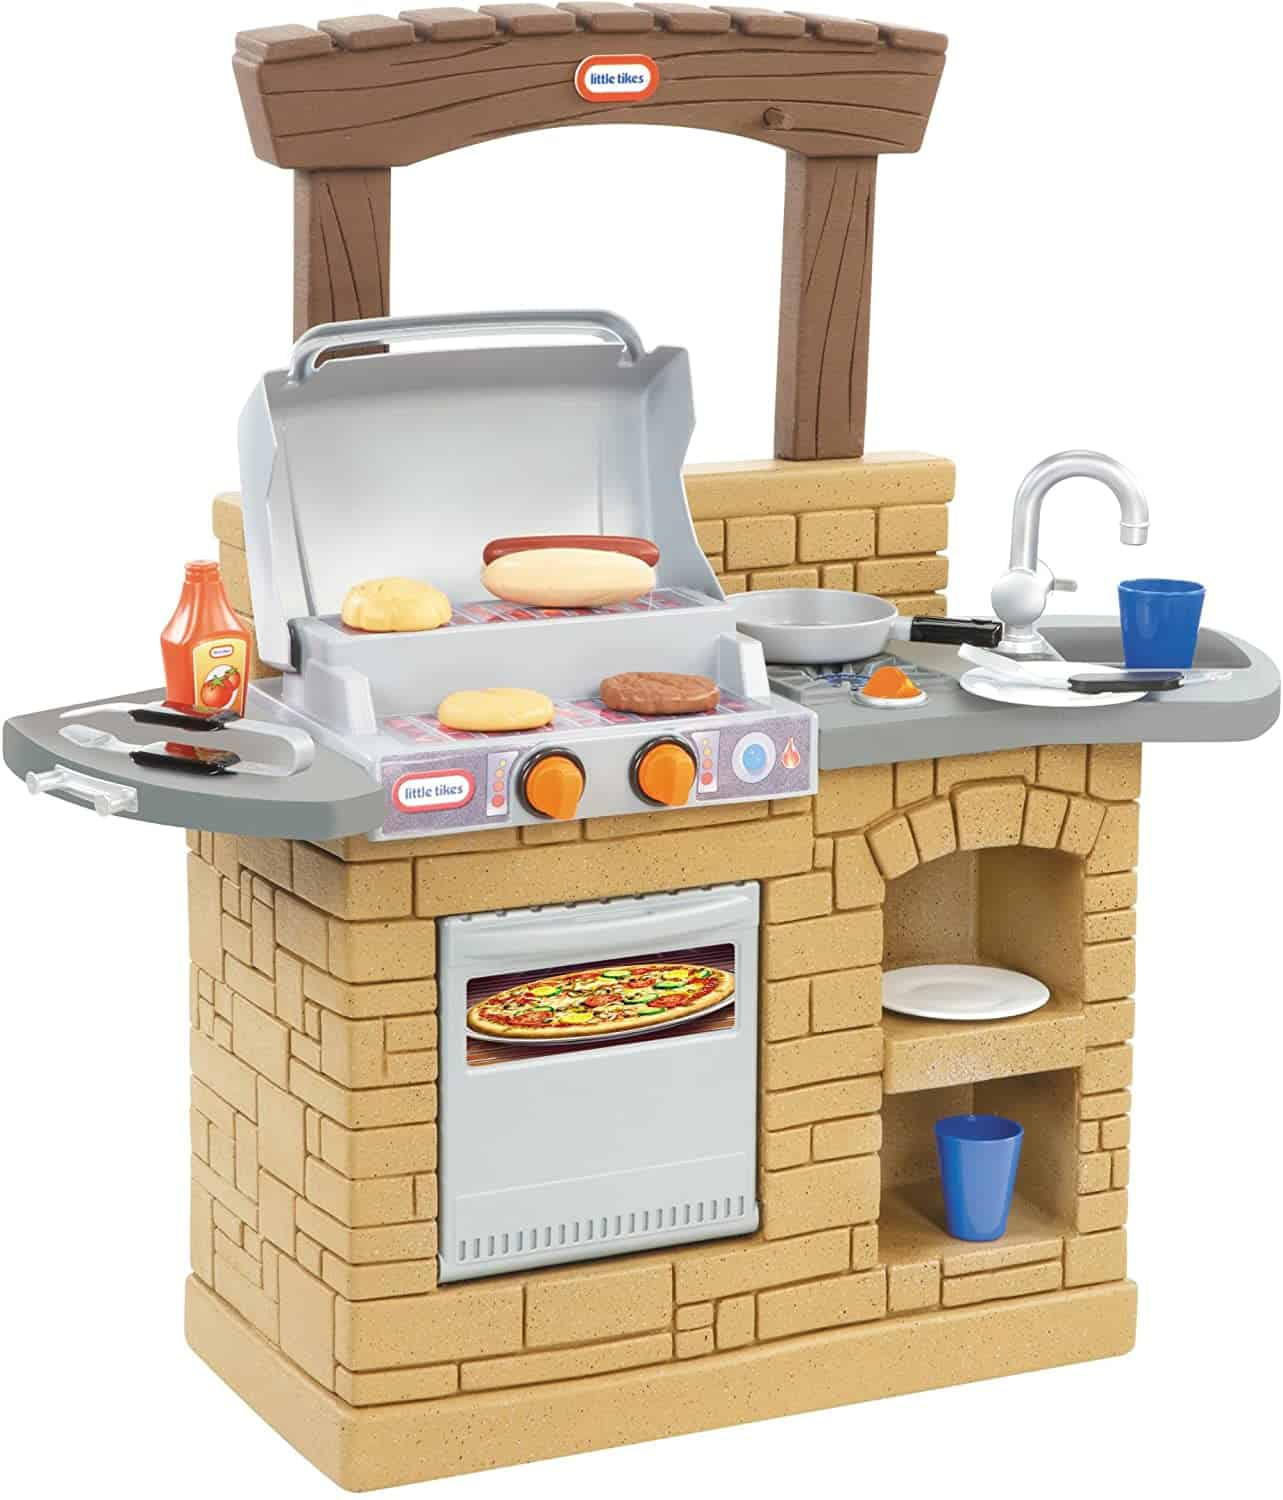 outdoor bbq pretend play outdoor toys for toddlers